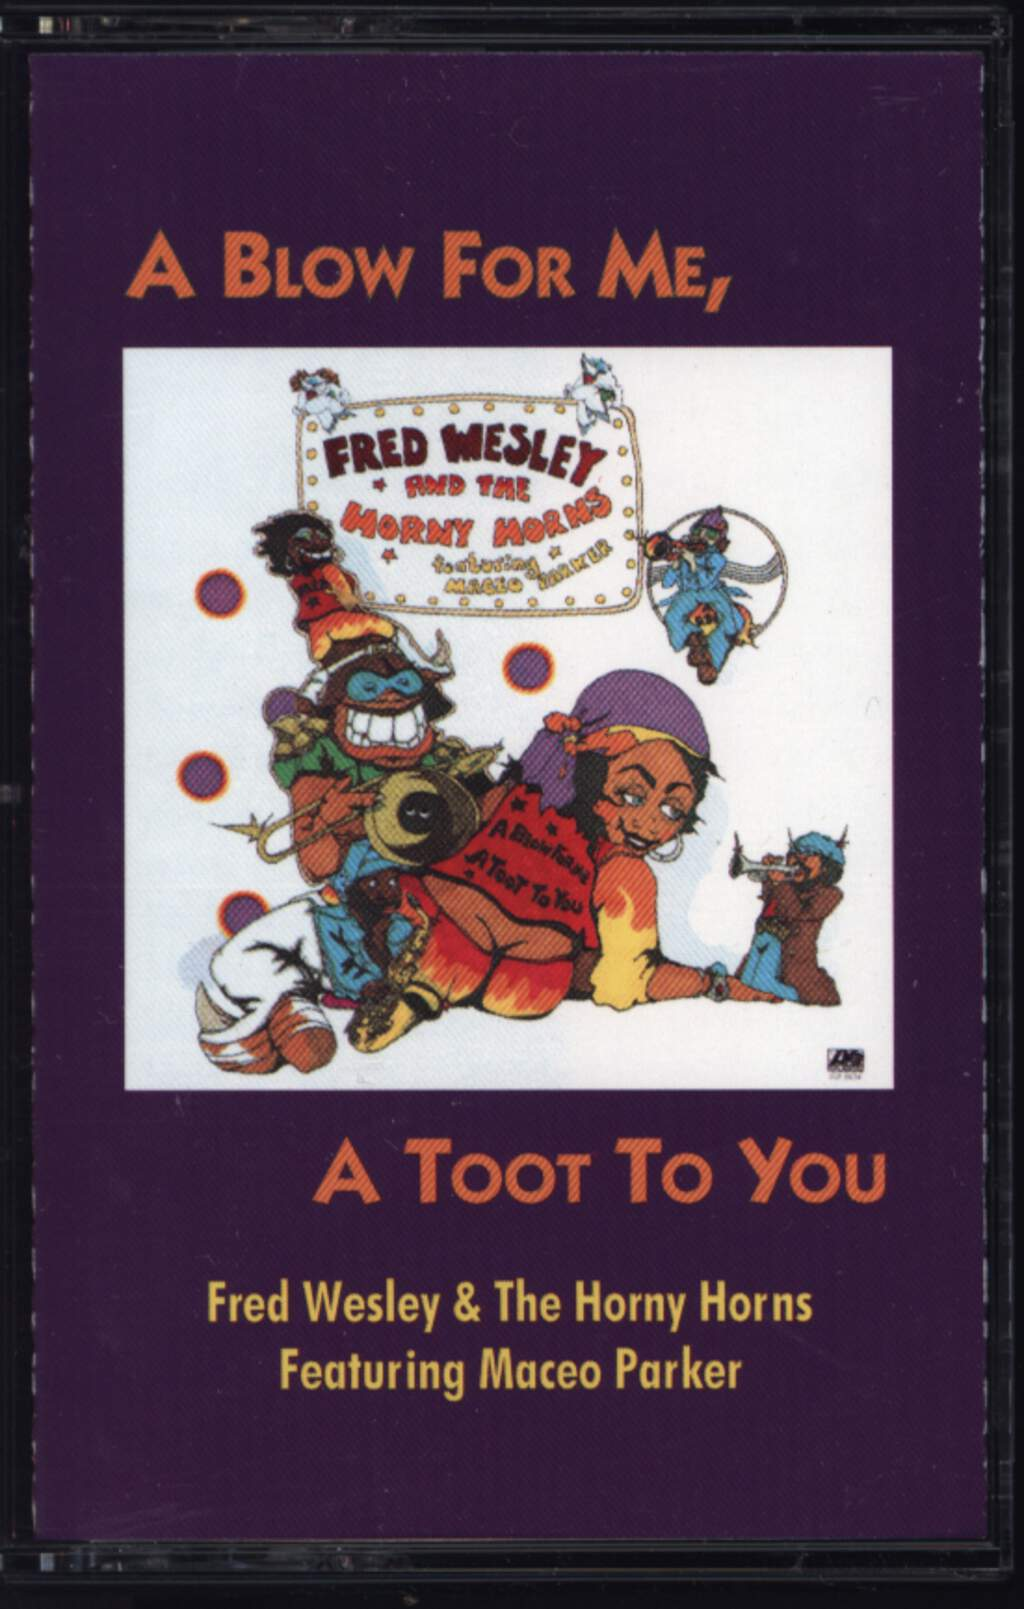 Fred Wesley & The Horny Horns: A Blow For Me, A Toot To You, Compact Cassette